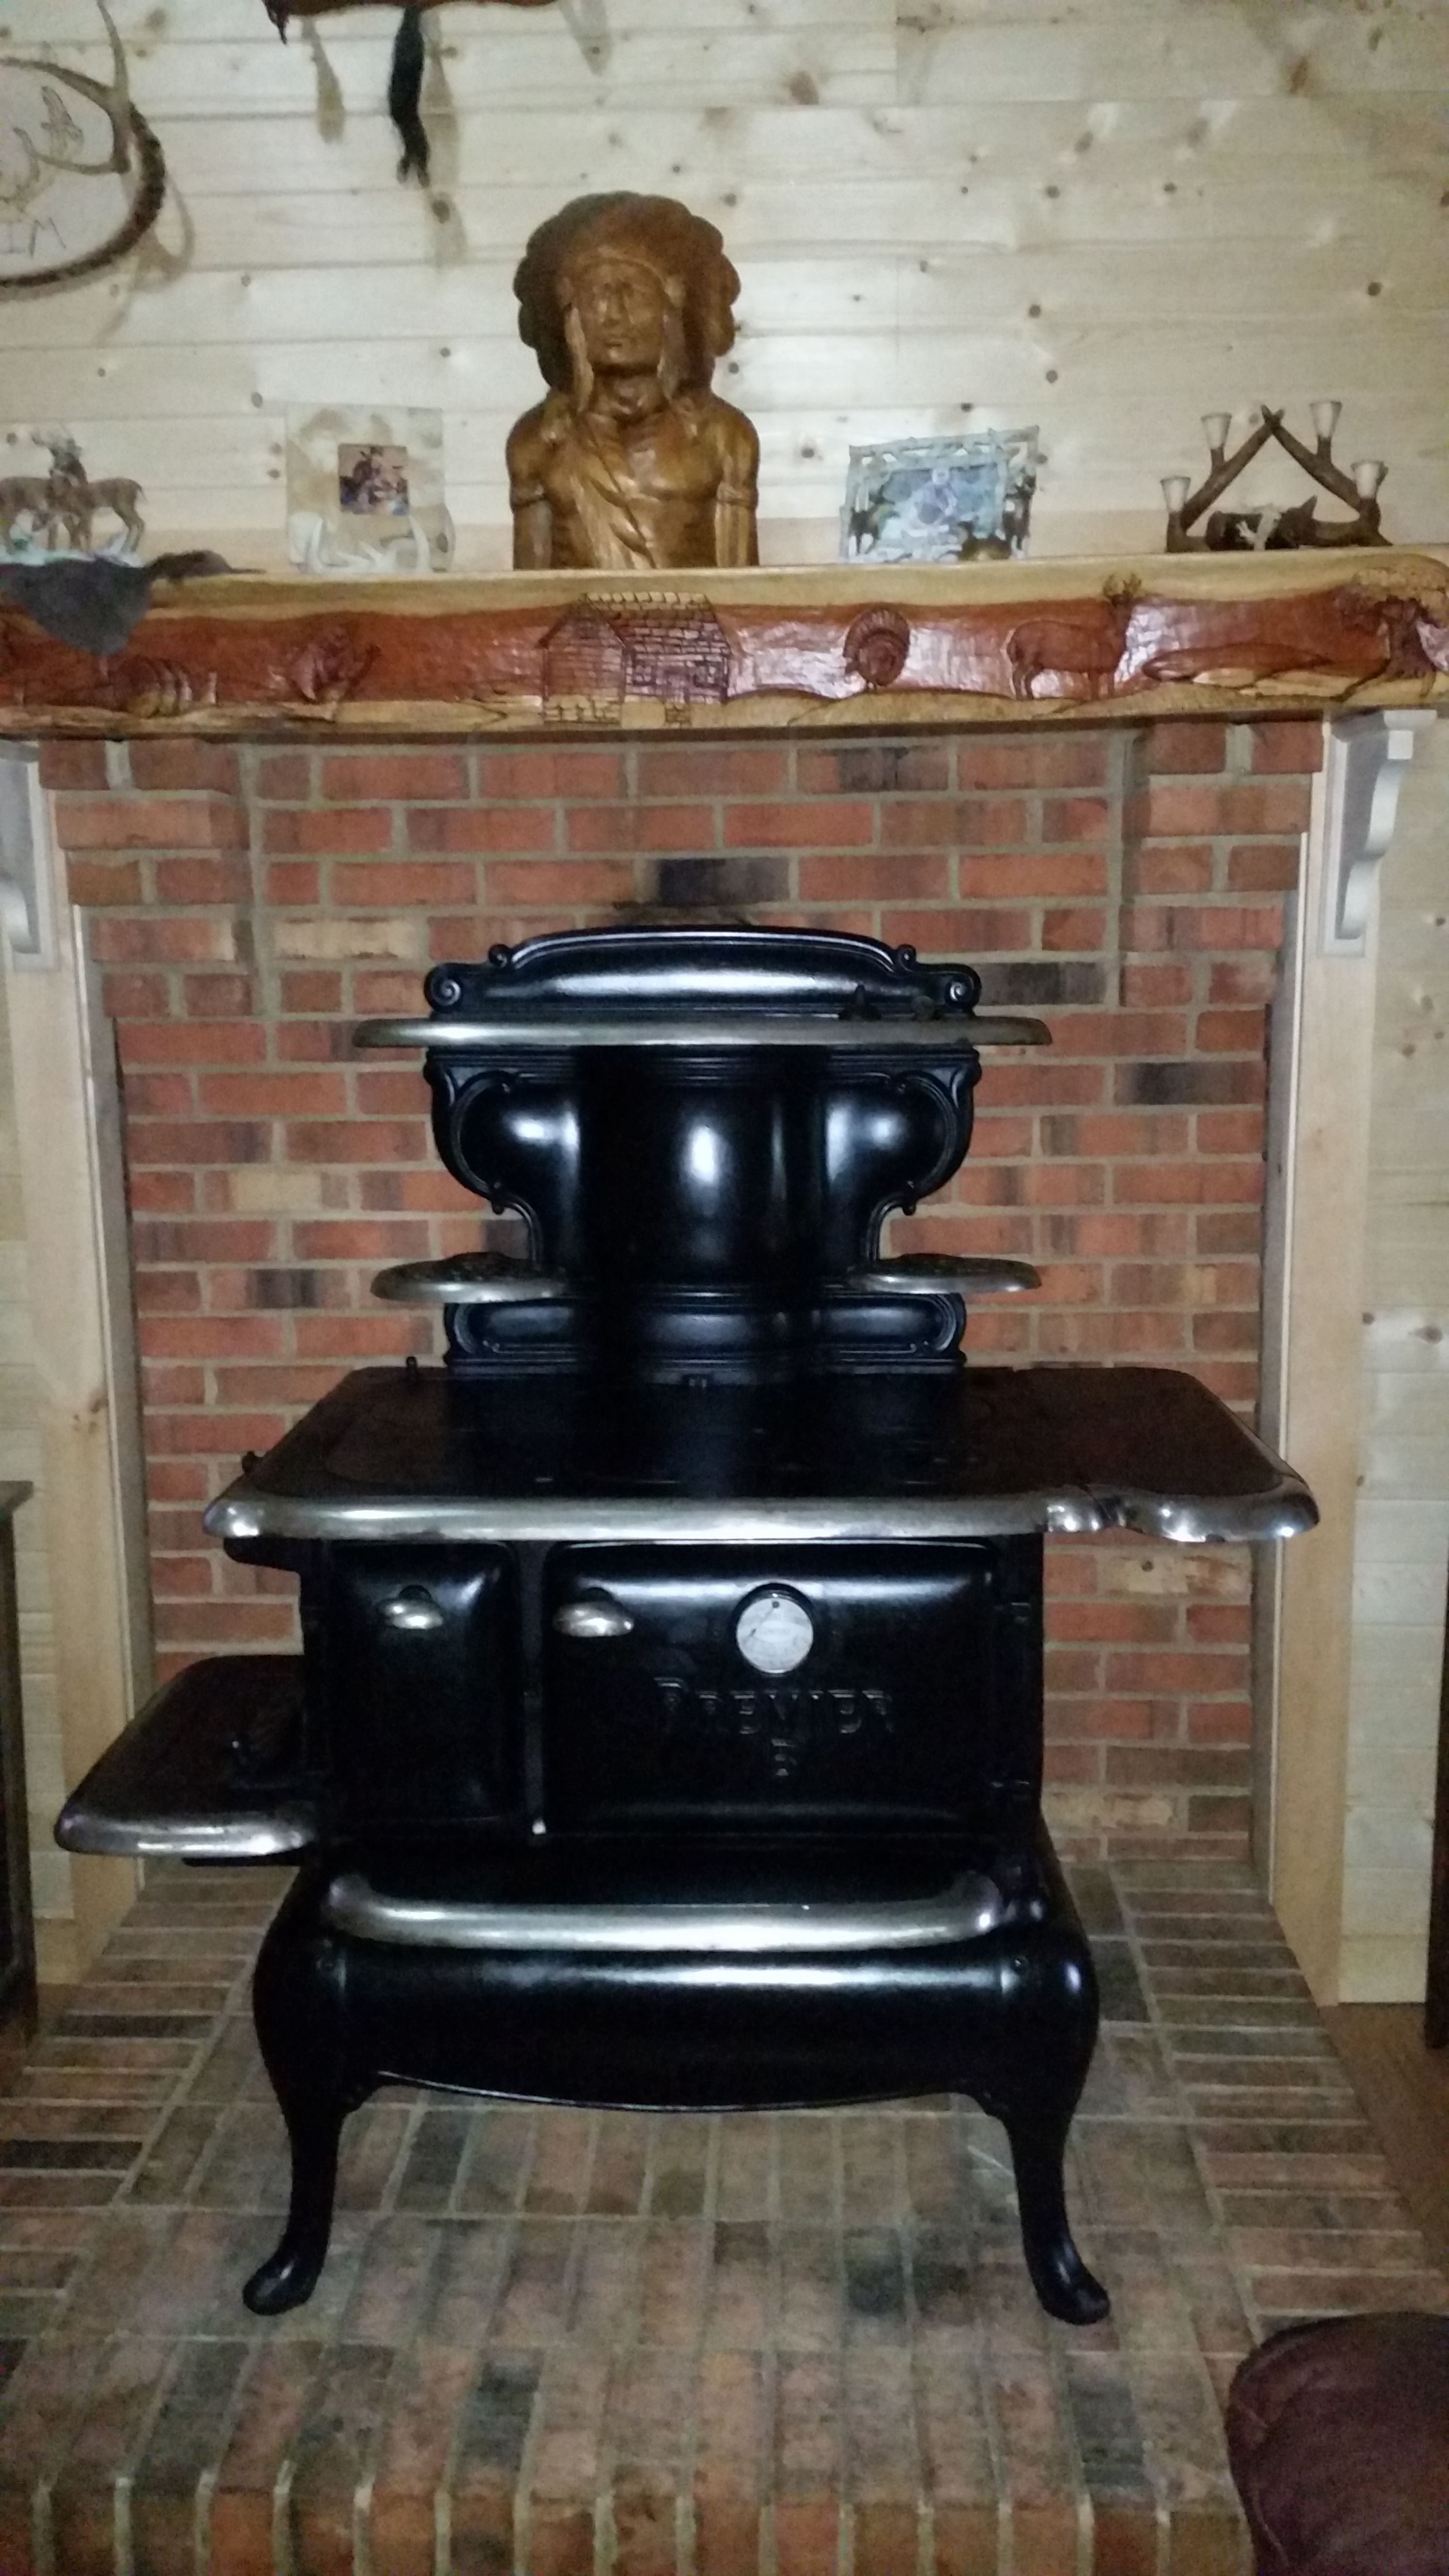 Pic of new cook stove purchased on Craigslist, needs some ...